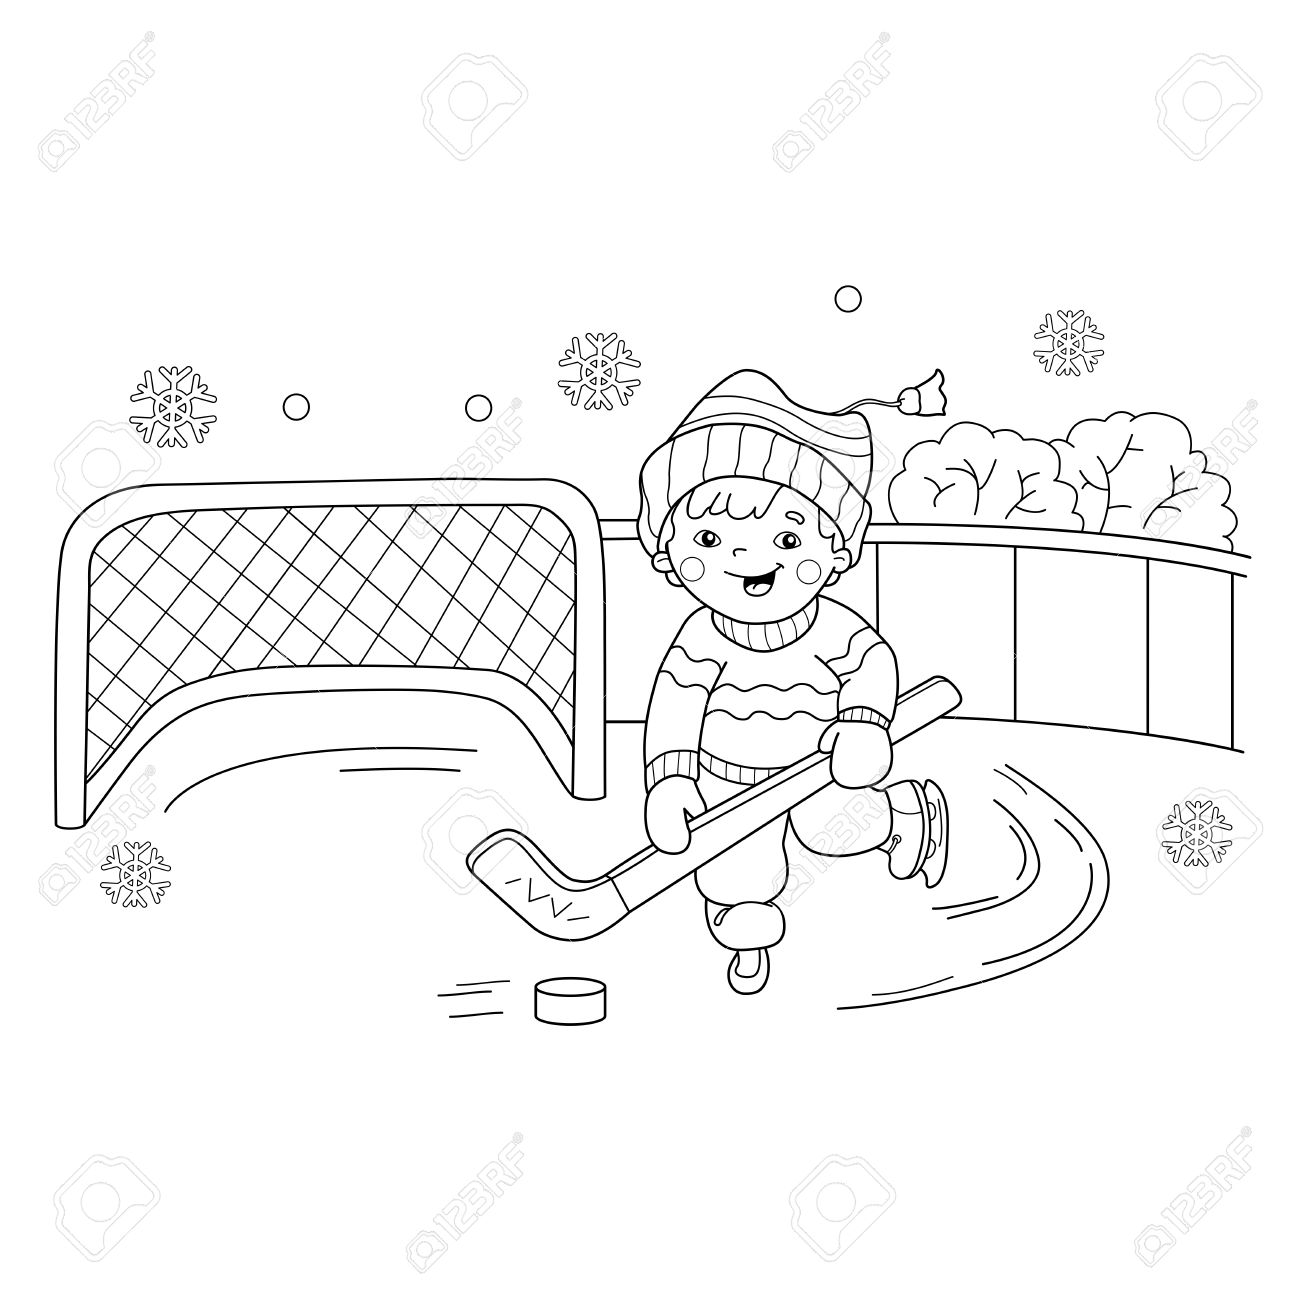 coloring page outline of cartoon boy playing hockey winter sports playground coloring book - Free Playground Coloring Pages